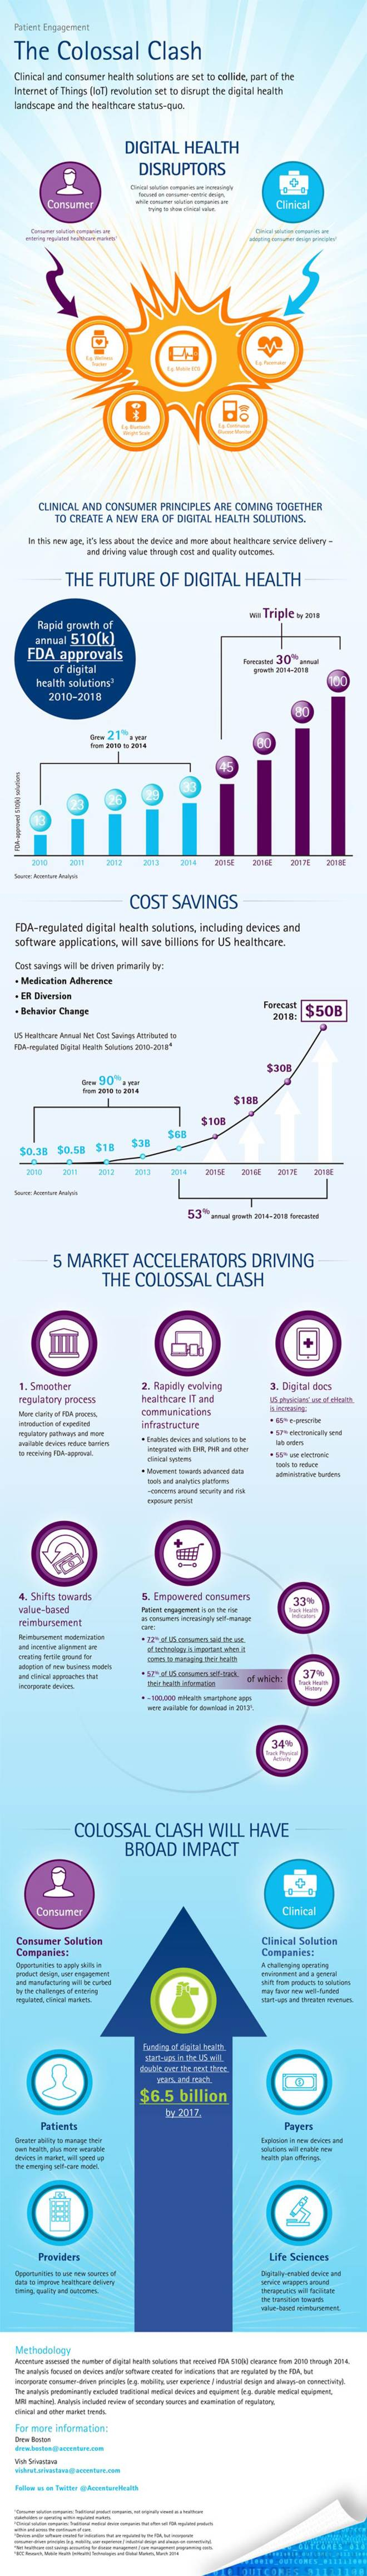 Accenture-Colossal-Clash-Infographic